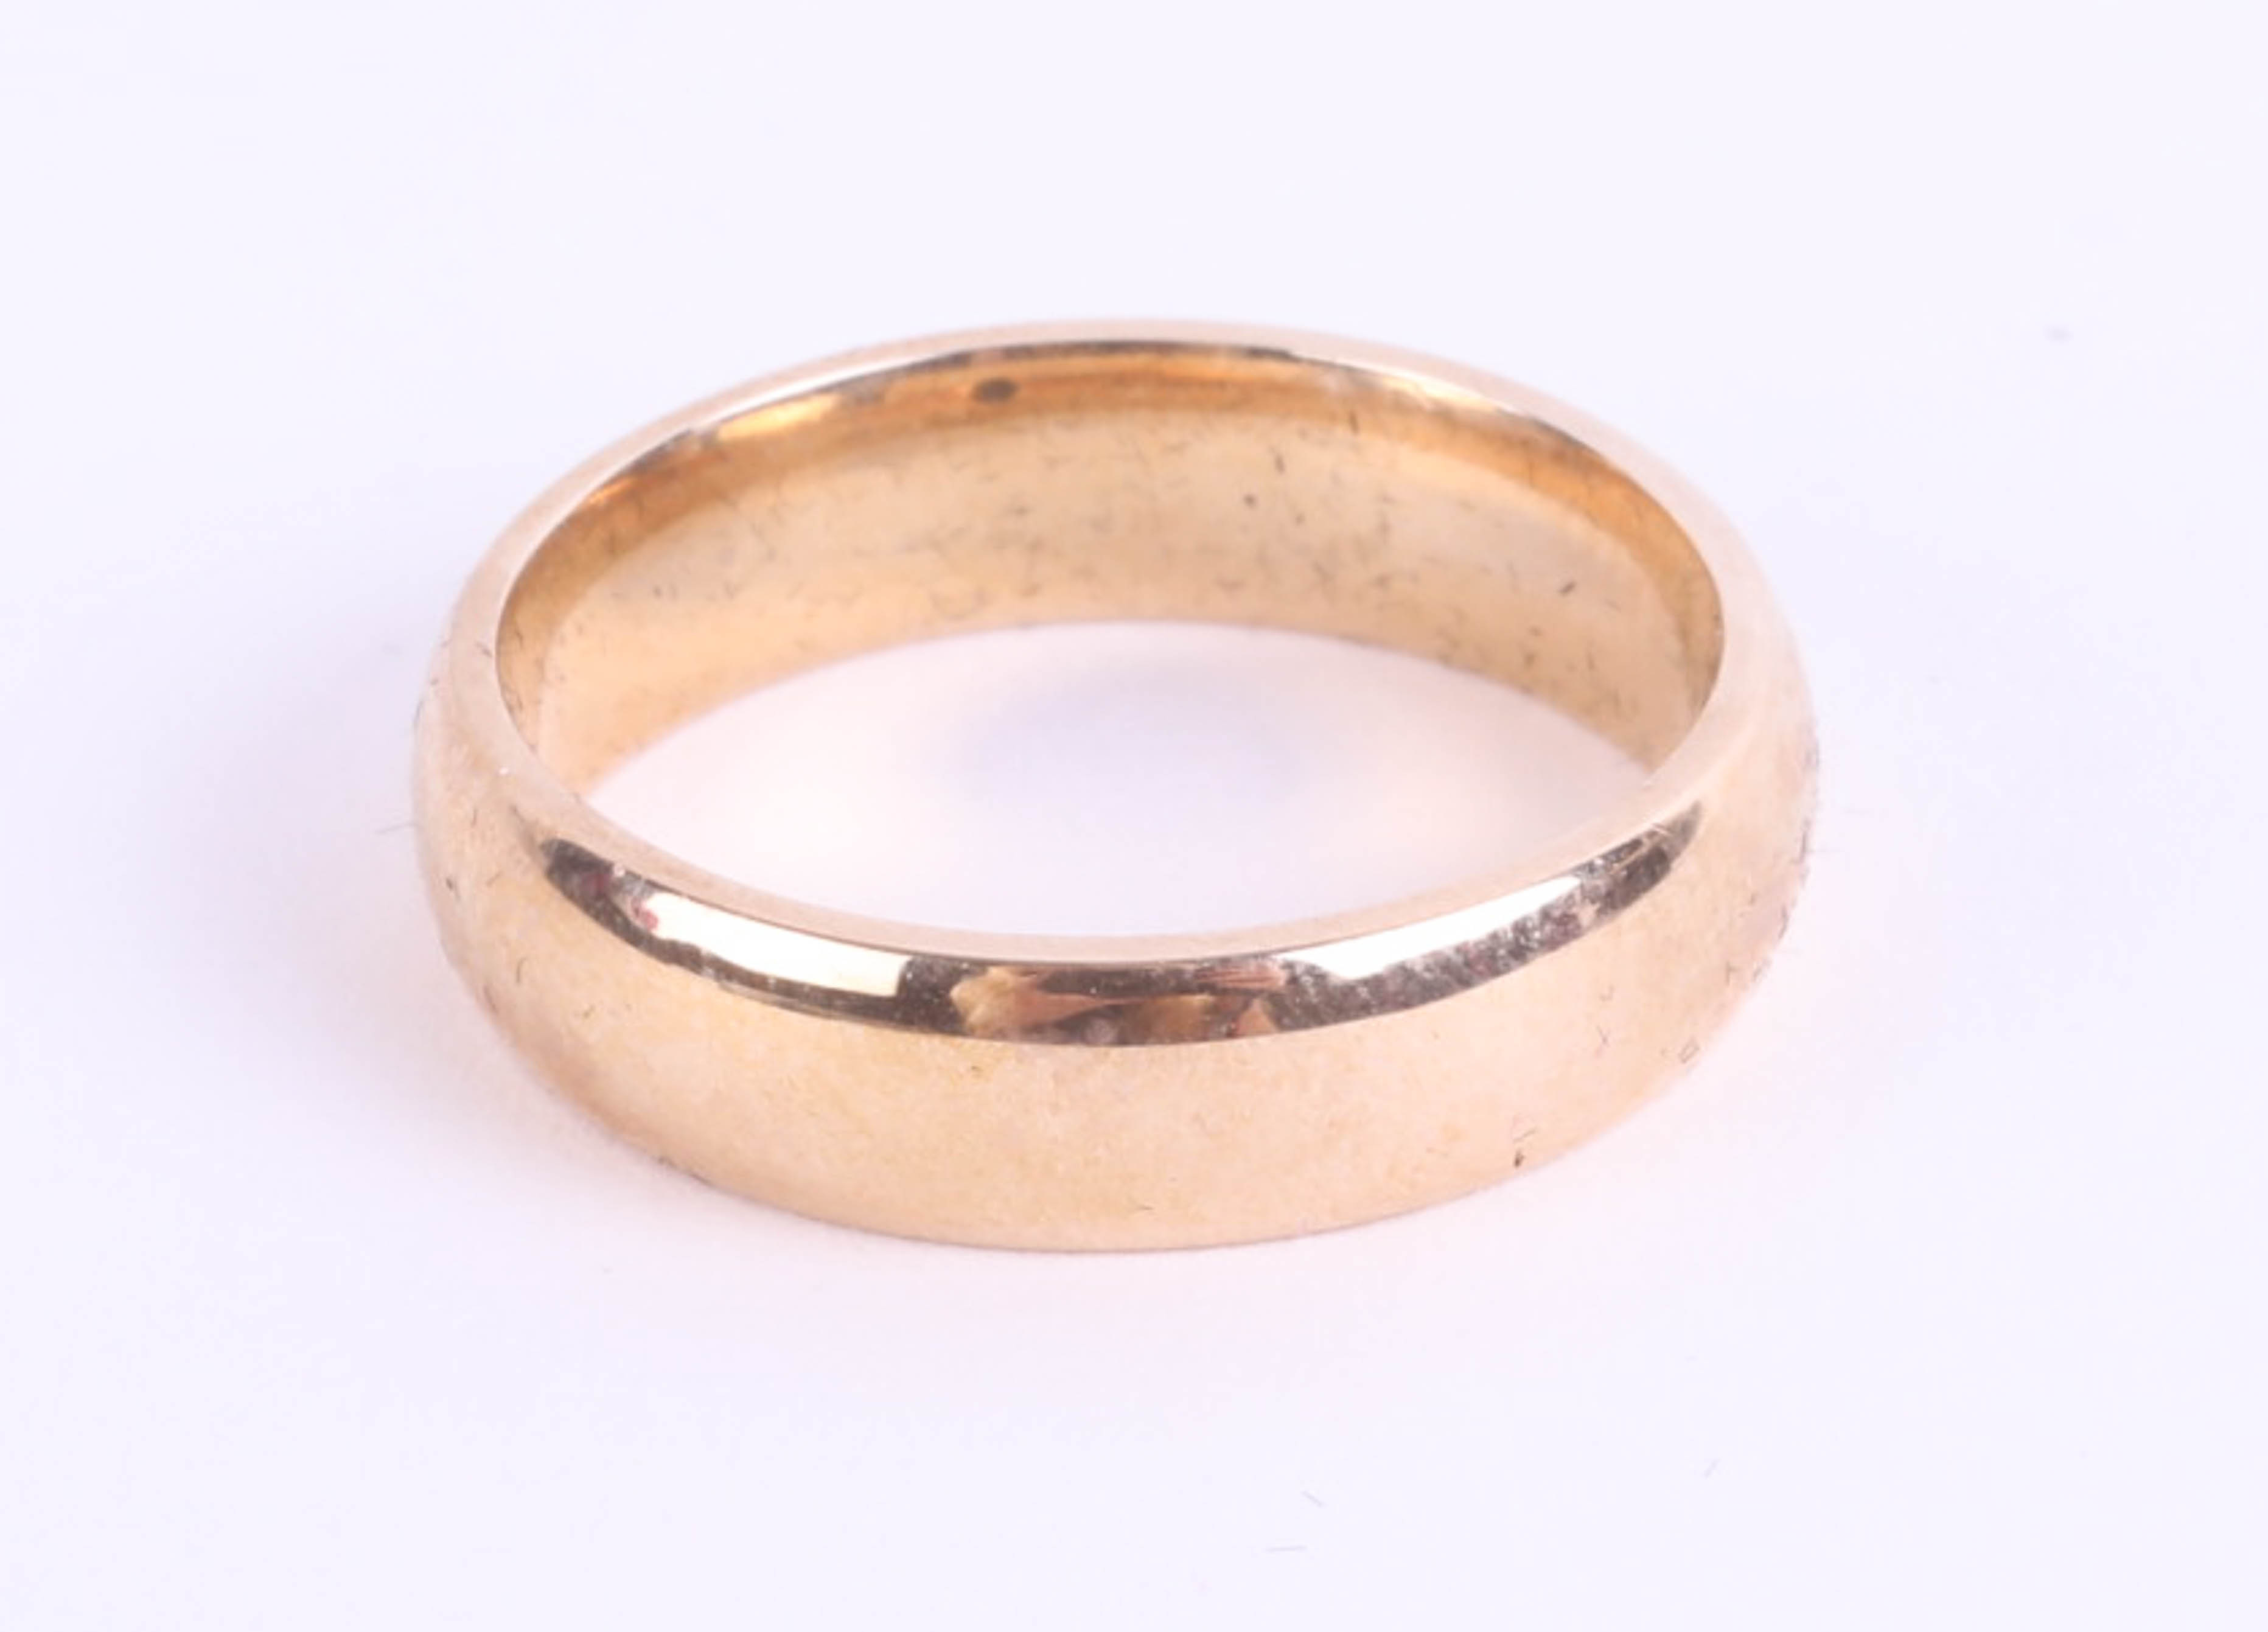 Lot 036 - A 9ct yellow gold gents wedding band, size O/P, 5g, in original H.Samuel box and case.